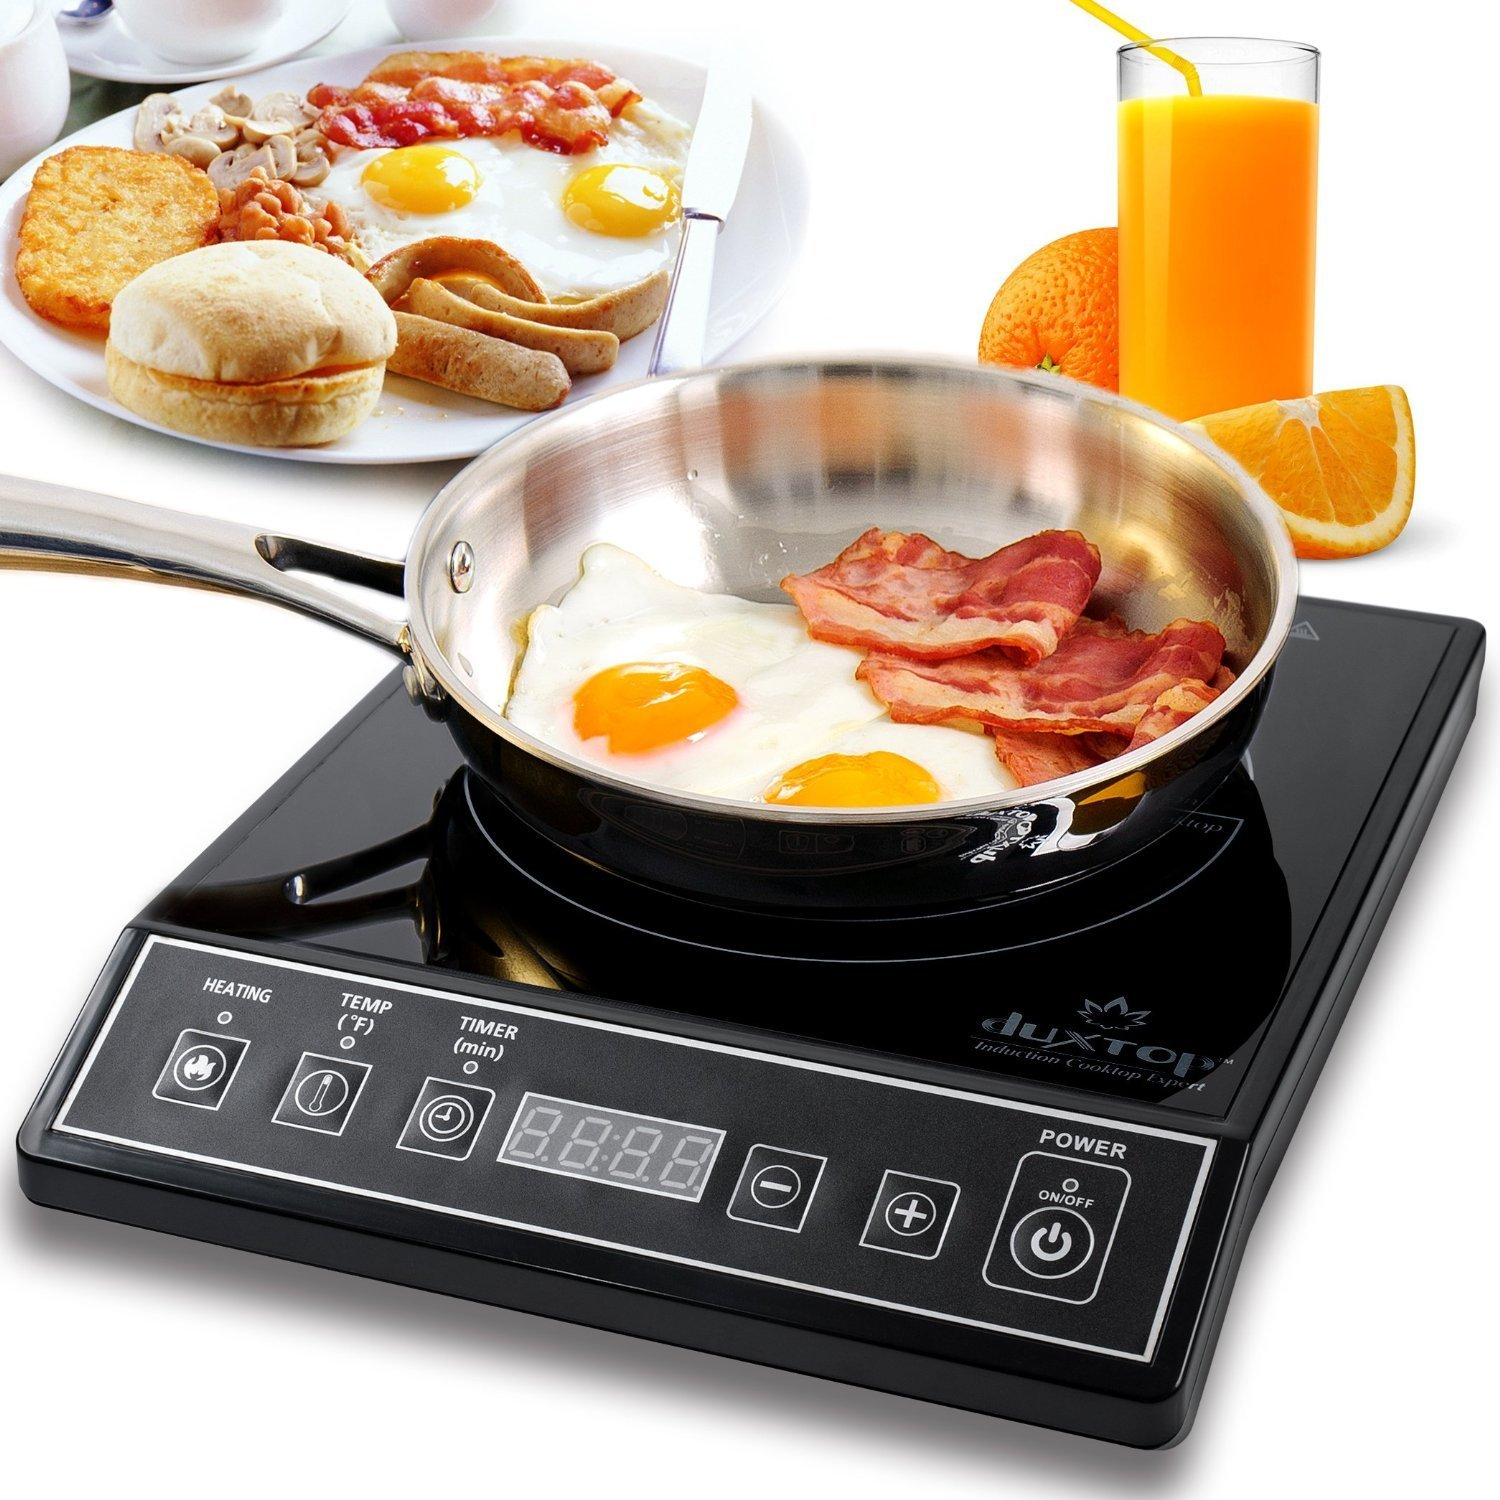 What is the Best Ceramic Cookware for Induction Cooktop?